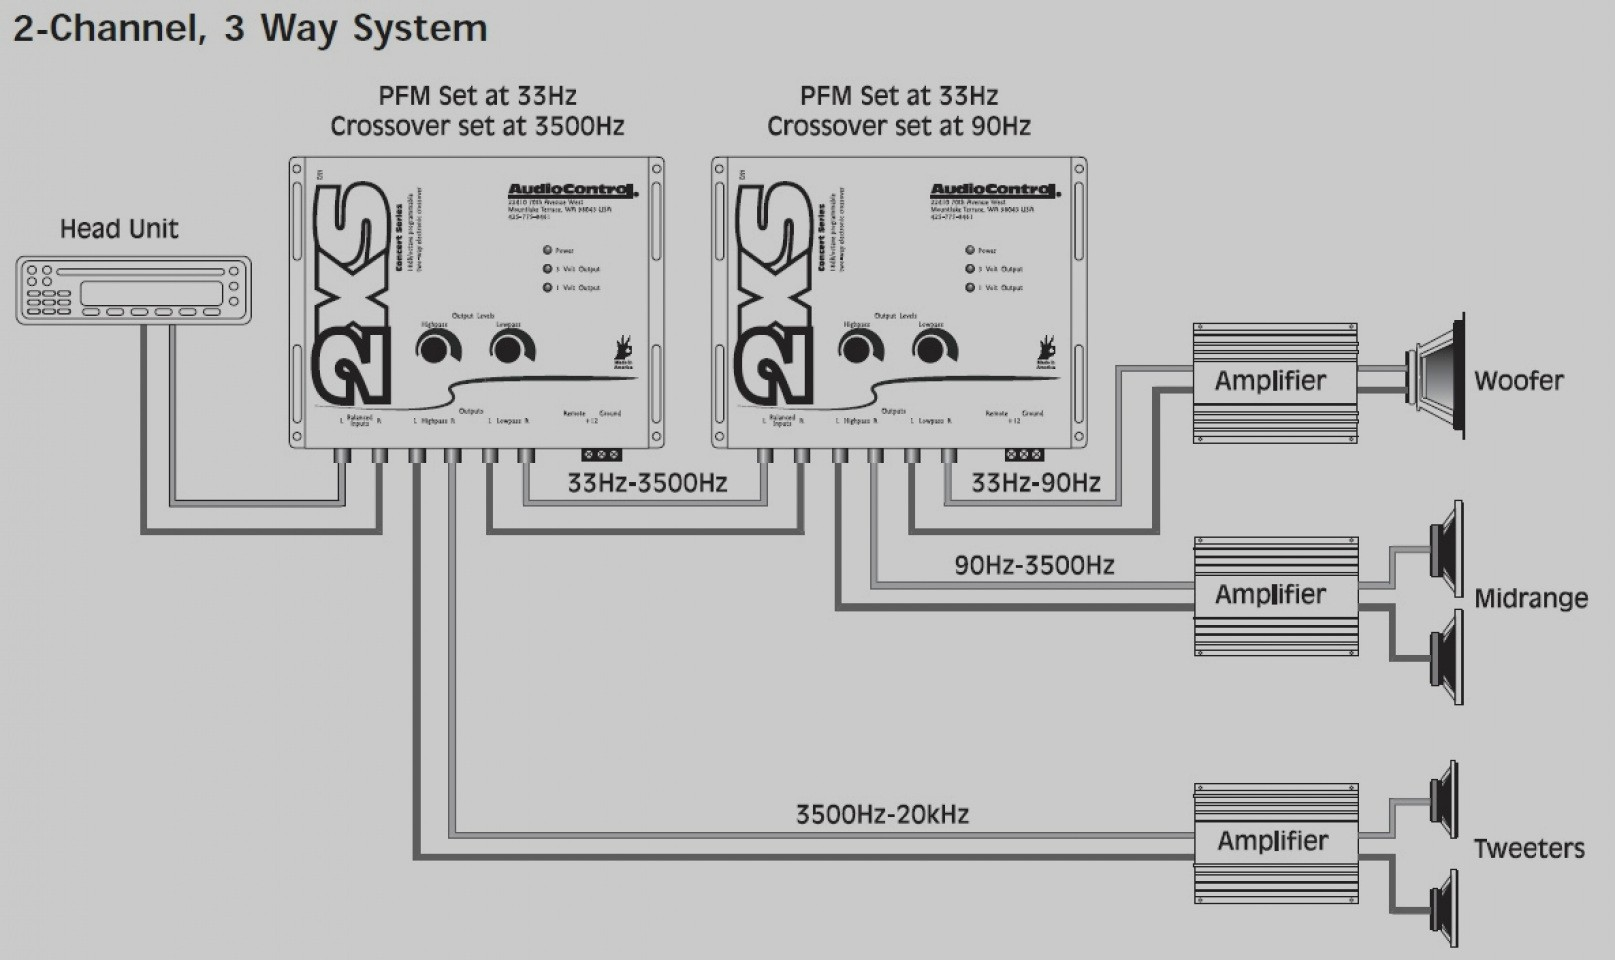 Speaker Crossover Wiring Diagram Yamaha Ns 6490 Trusted Way Work Also Jbl Speakers 3 Diagrams